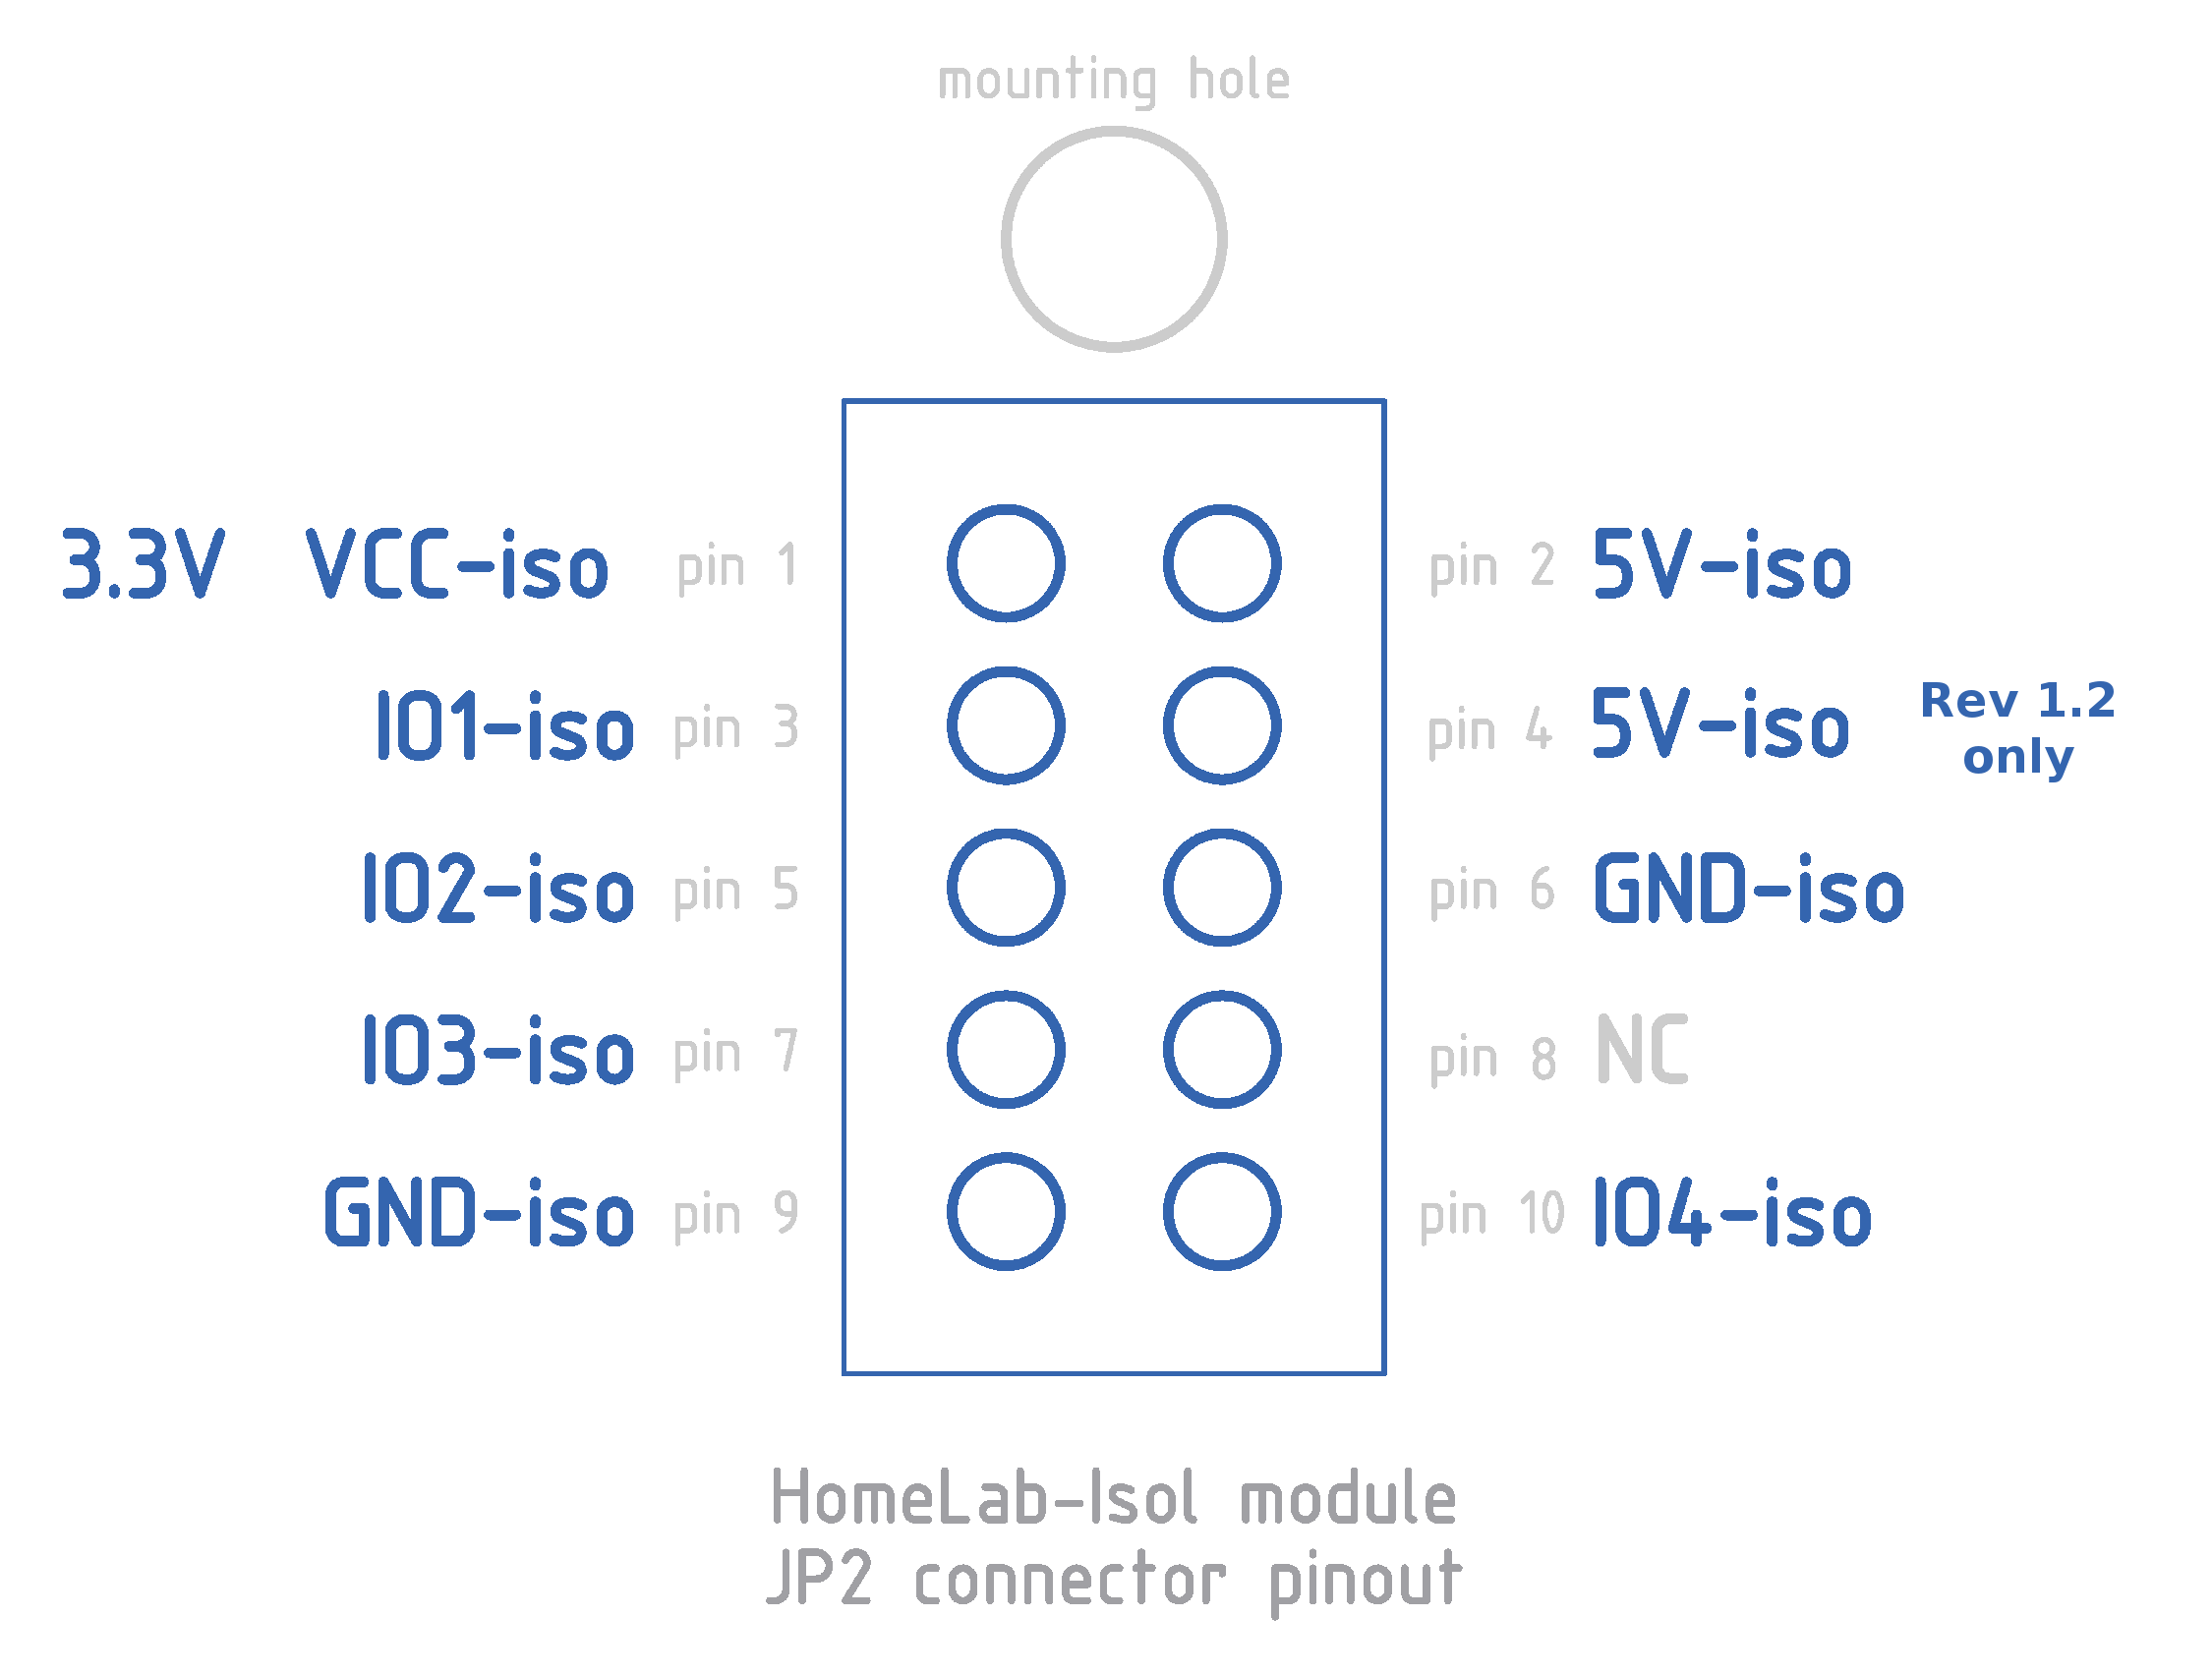 HomeLab-Isol. JP2 connector scheme.